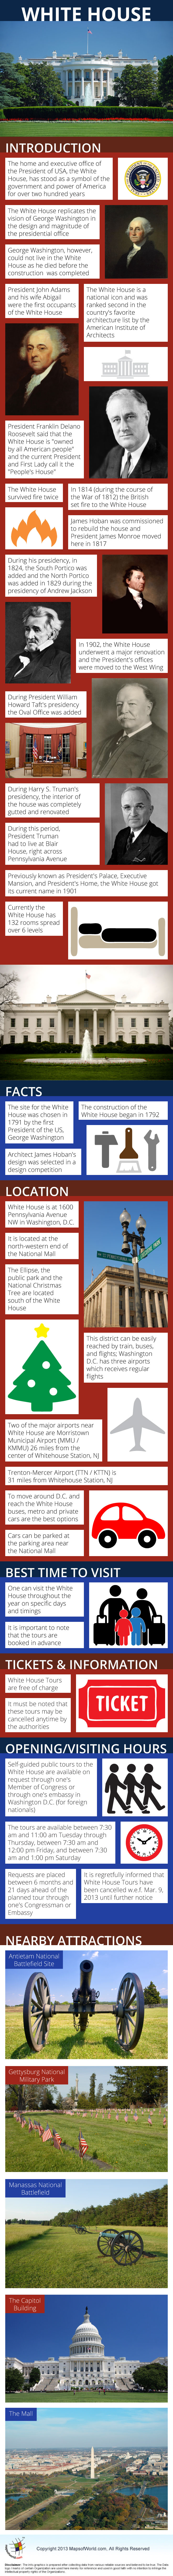 White House Infographic The site for the White House was chosen in 1791 by the first President of the US, George Washington. The construction of the White House began in 1792. Architect James Hoban's design was selected in a design competition.   Read more: http://www.mapsofworld.com/travel/destinations/usa/white-house-washington-d-c#ixzz2rhB1Uudd